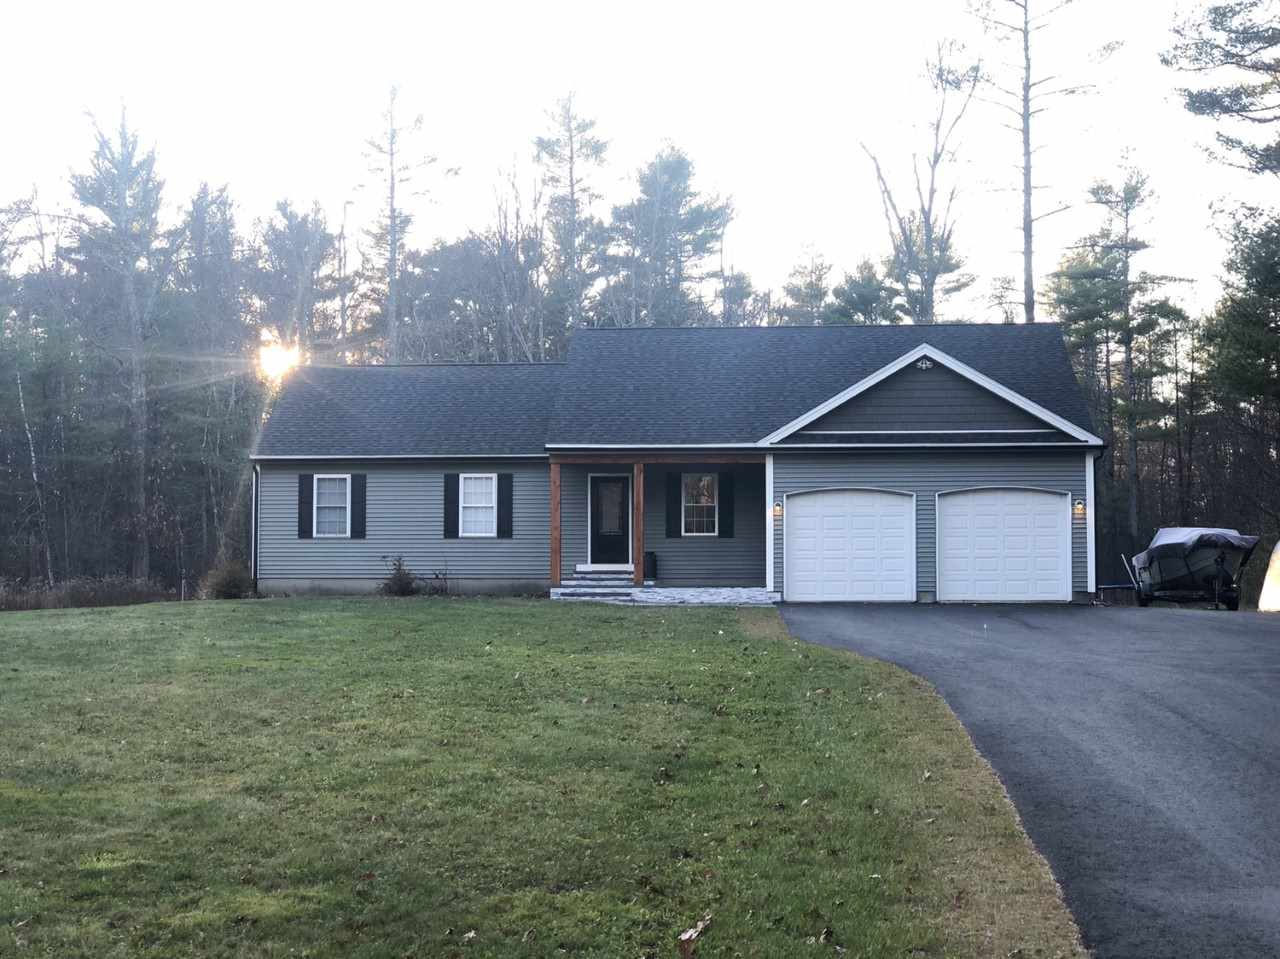 MLS 4784763: 703 Forristall Road, Rindge NH